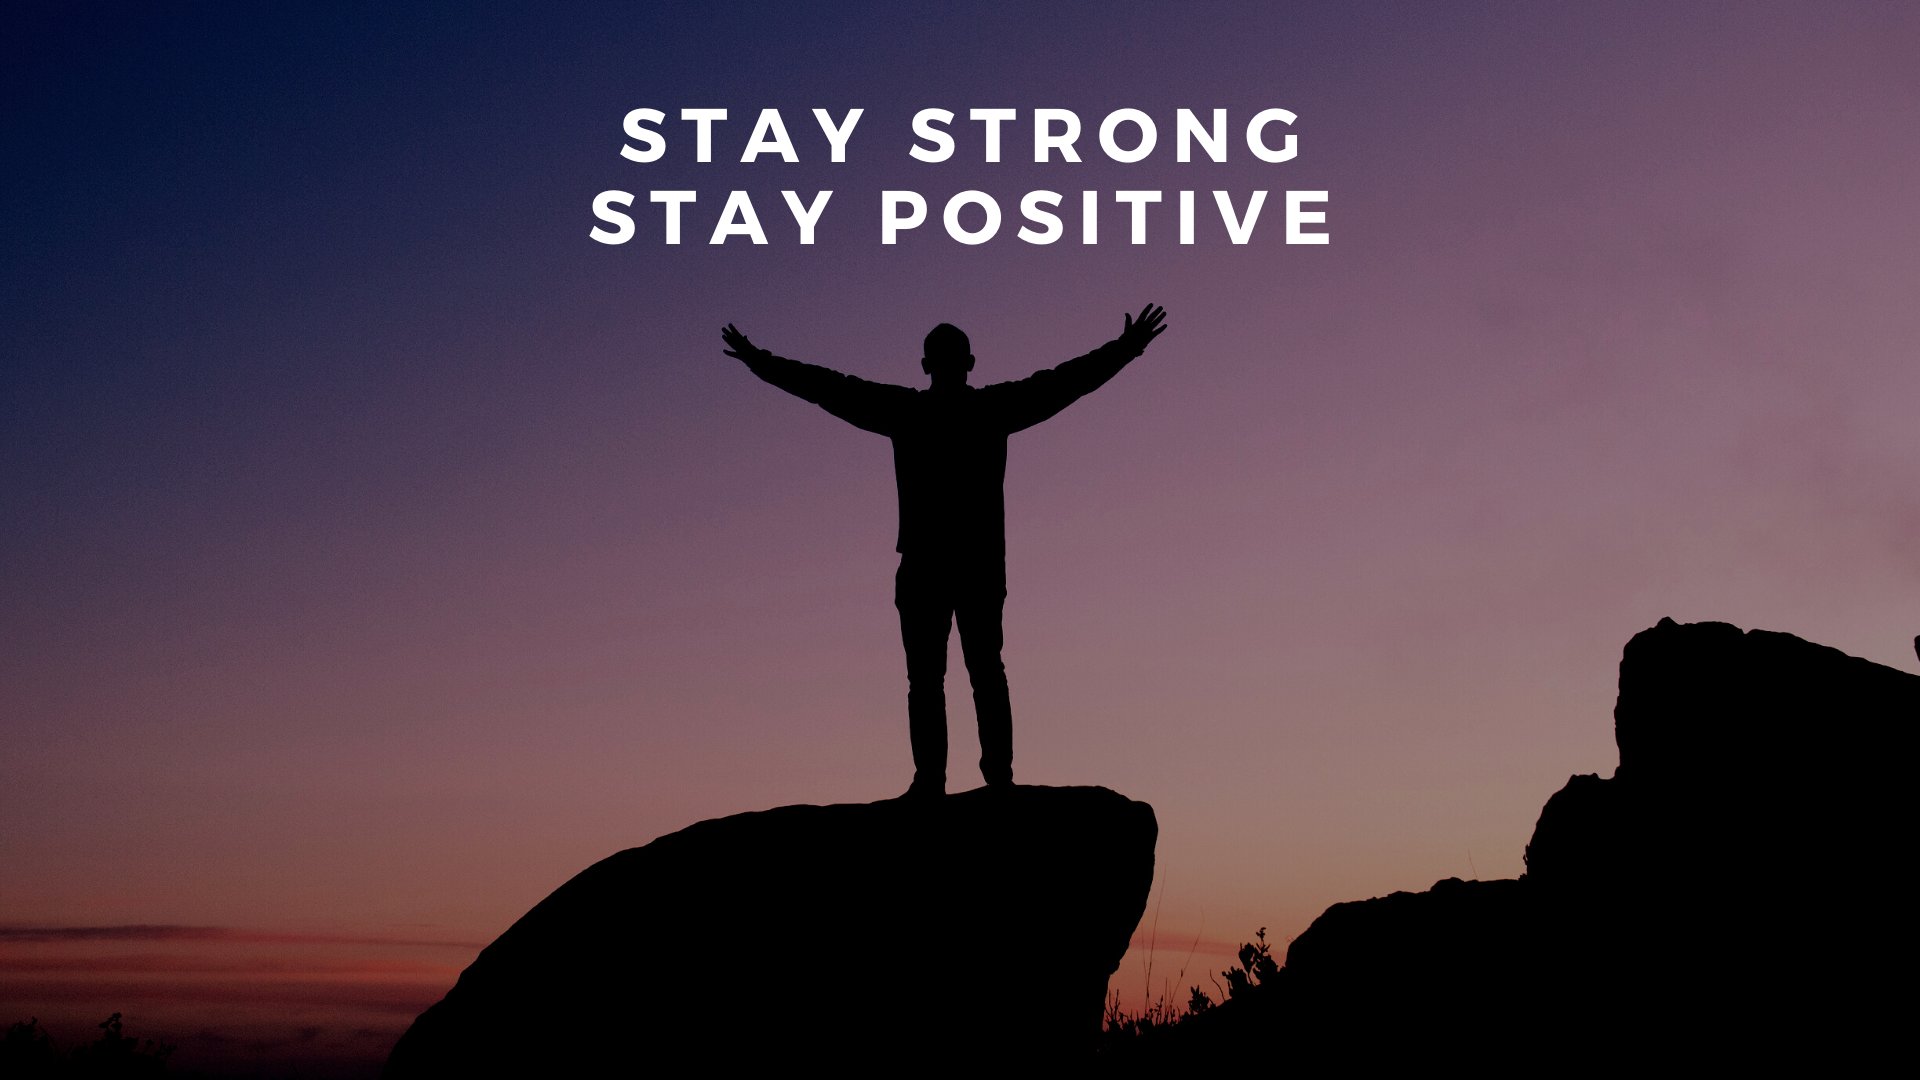 Stay Strong. Stay Positive